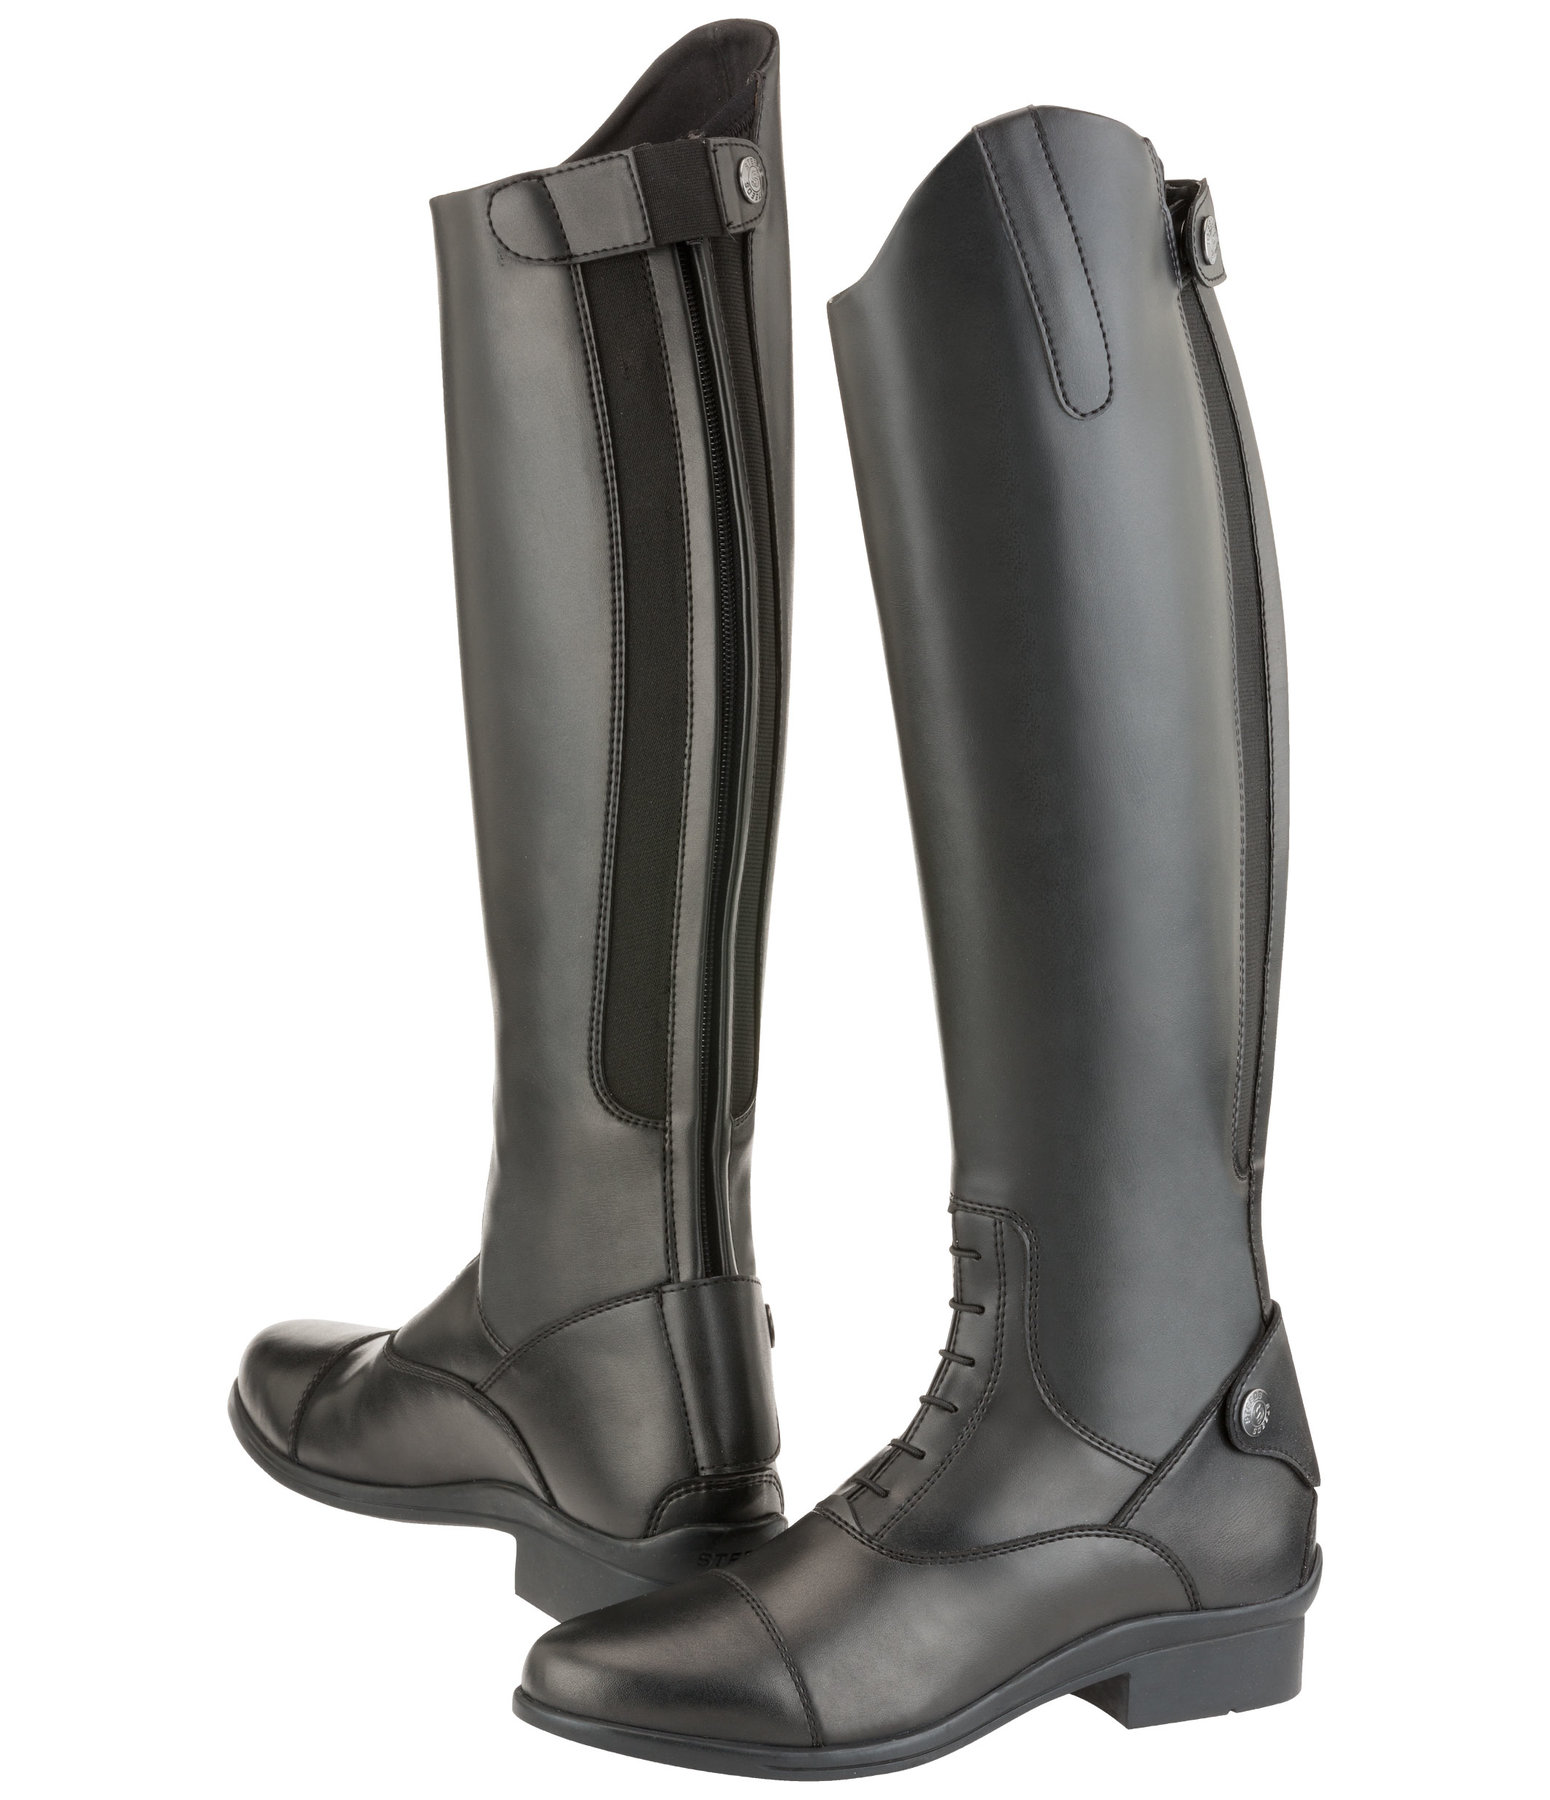 Riding Boots SYLKA Tender III